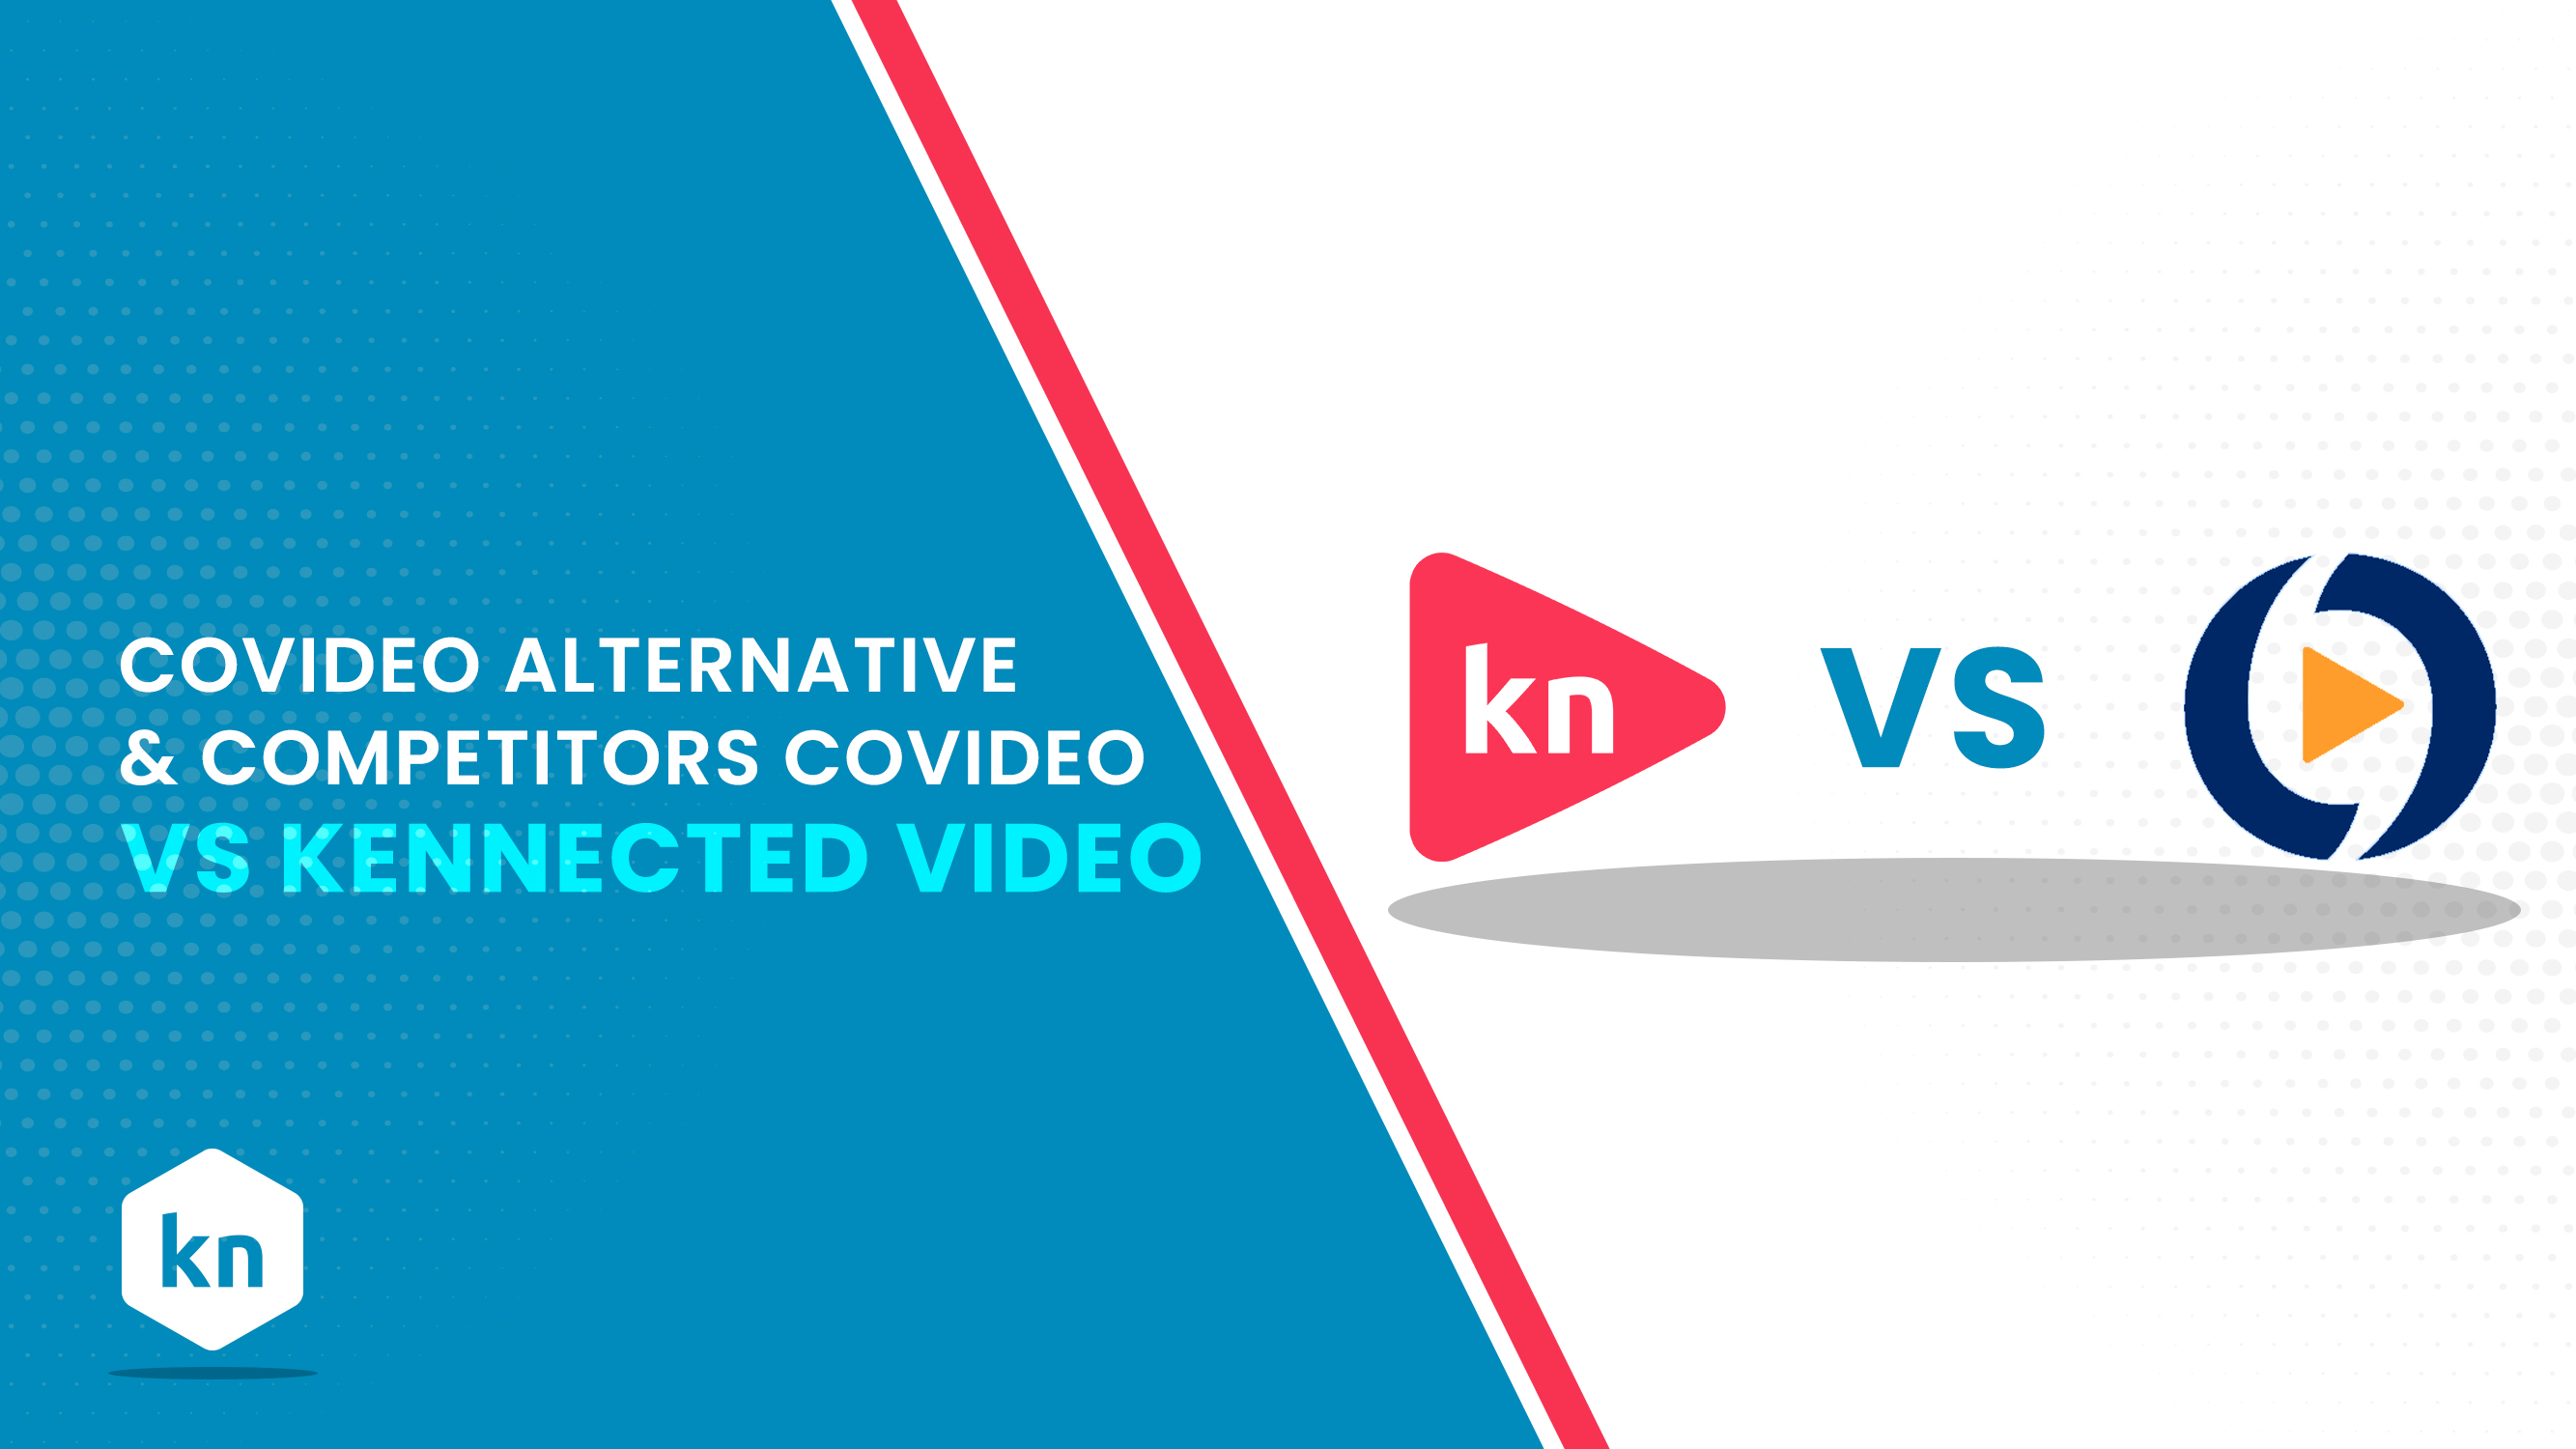 Covideo Alternative & Competitors | Covideo Vs. Kennected Video